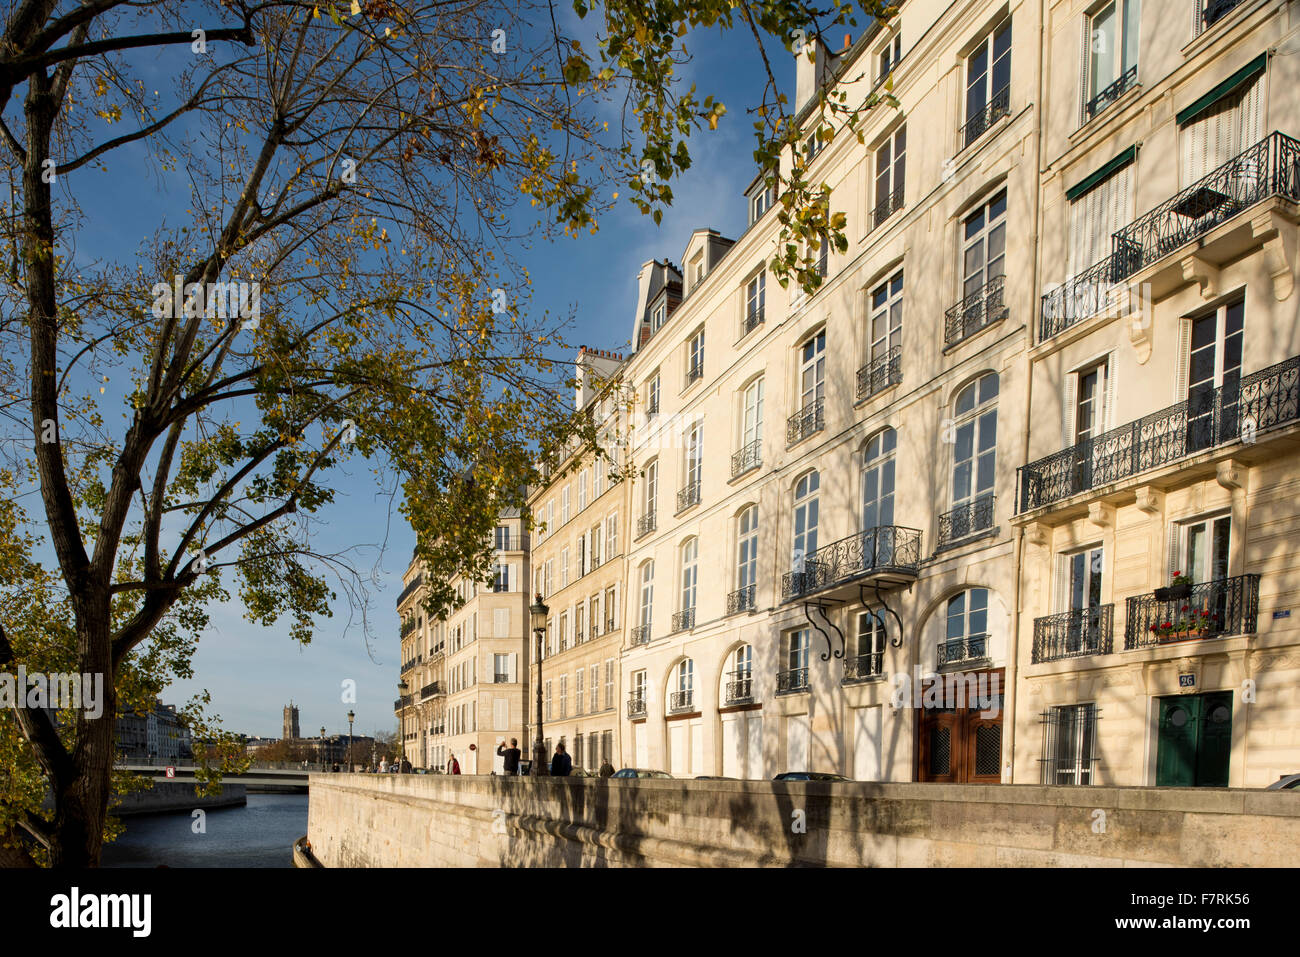 Grand old buildings on the Ile St Louis along the Seine looking toward Notre Dame; Paris, France - Stock Image